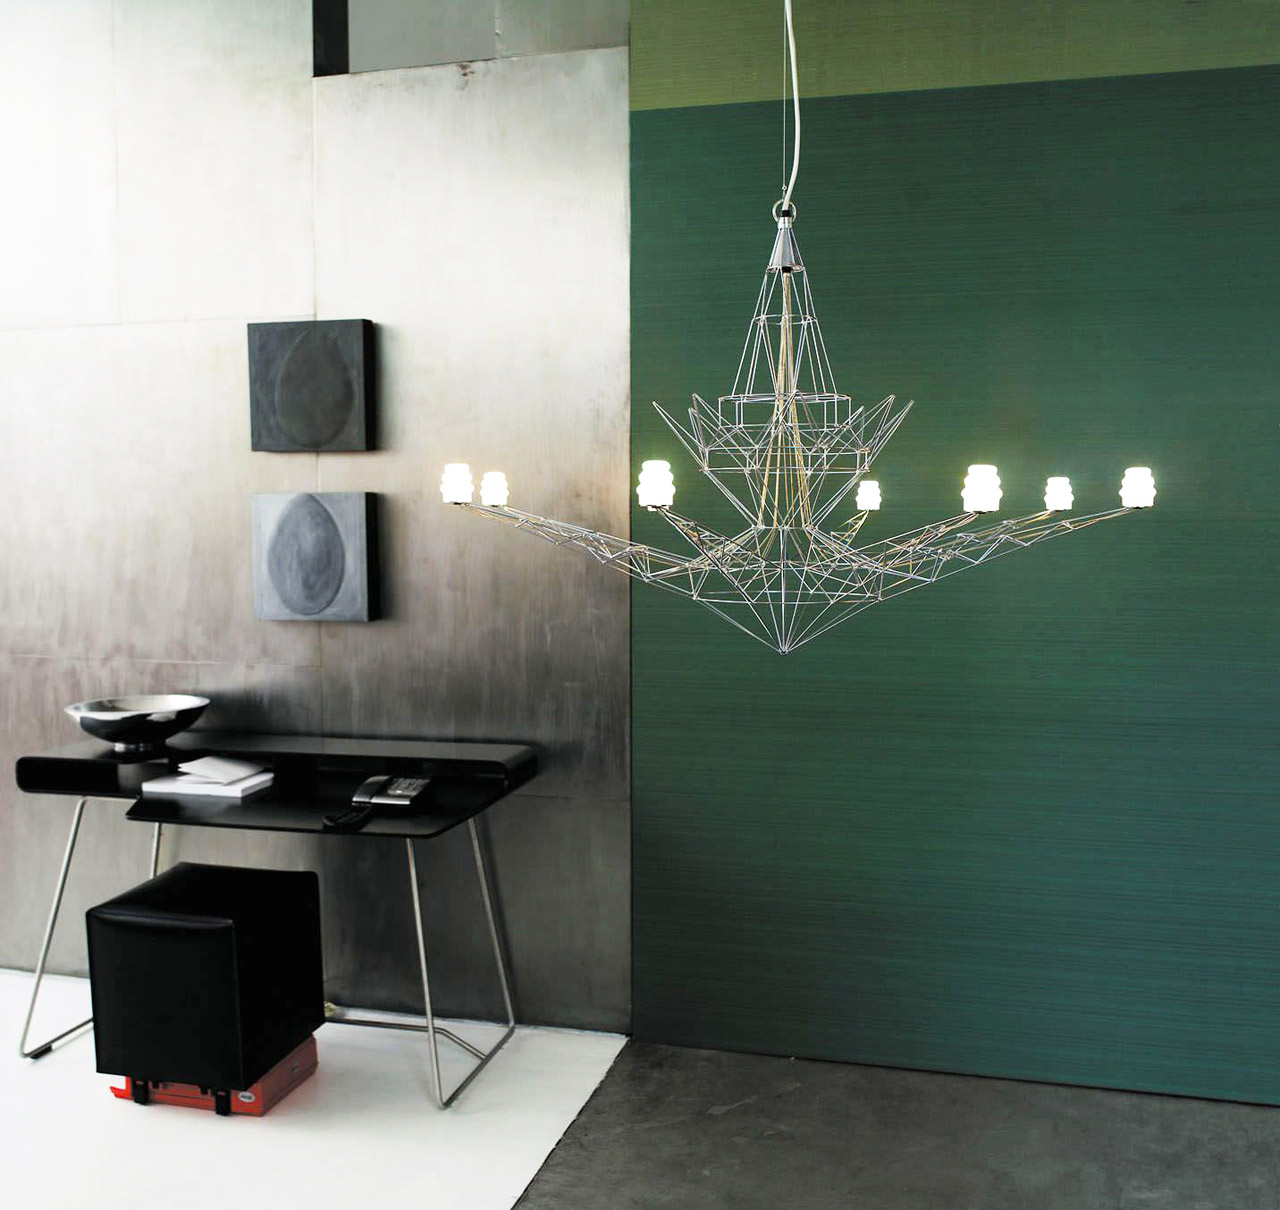 Lampada Lightweight, Tom Dixon, Foscarini, 1995